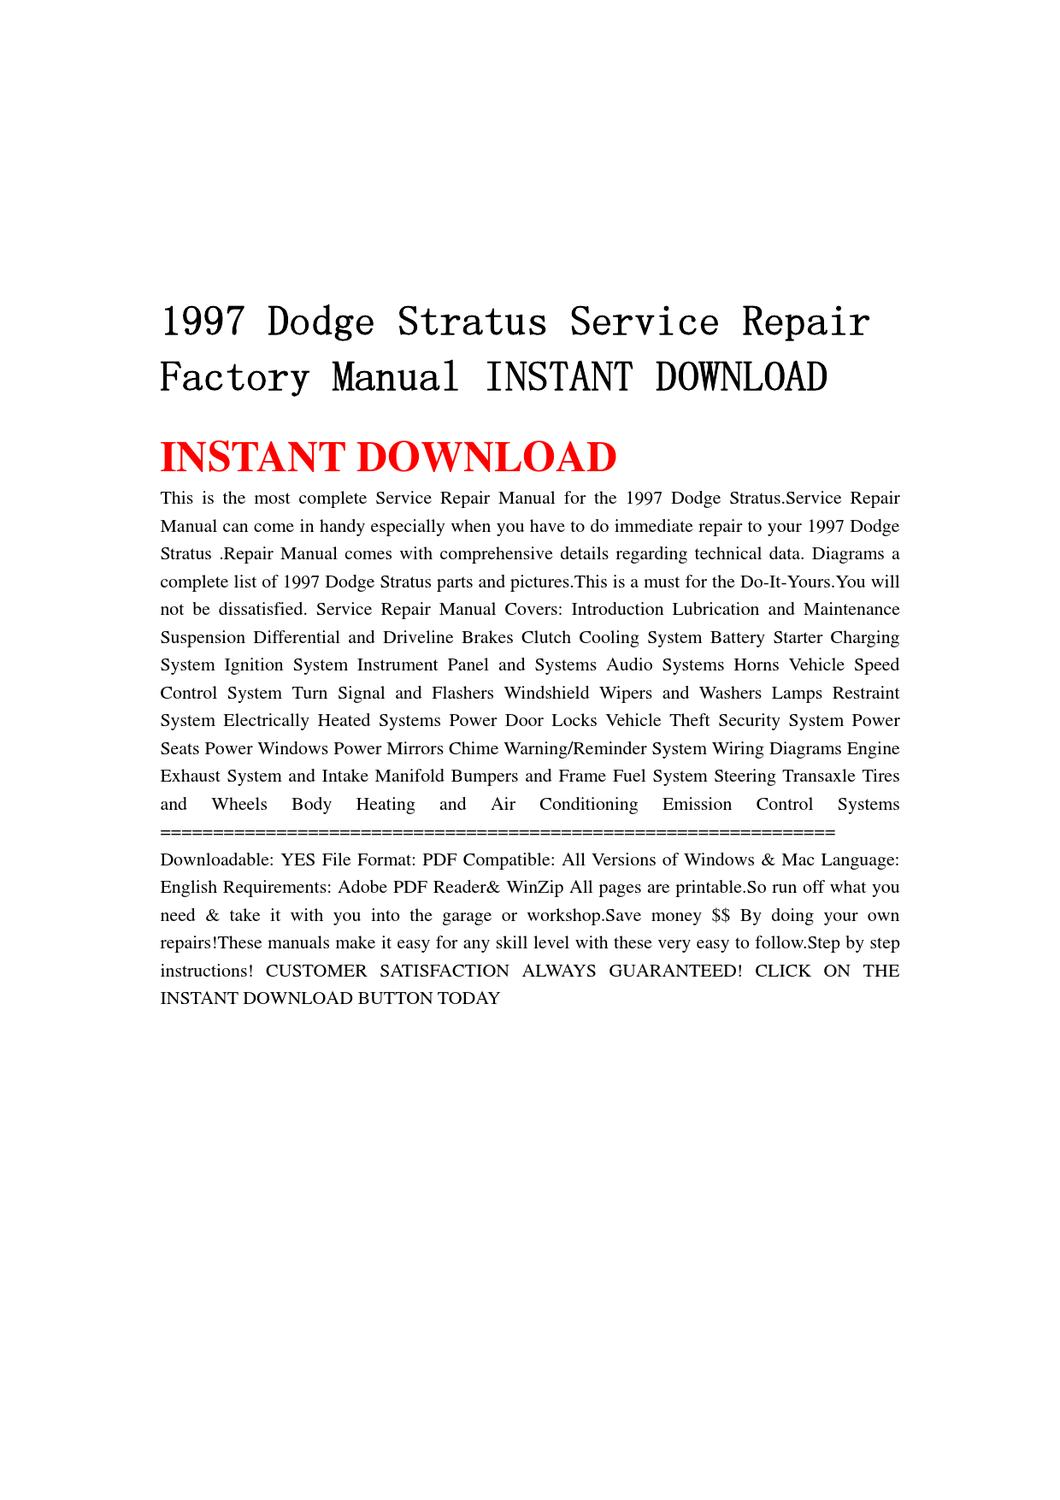 1997 Dodge Stratus Service Repair Factory Manual INSTANT DOWNLOAD by chen  wei - issuu